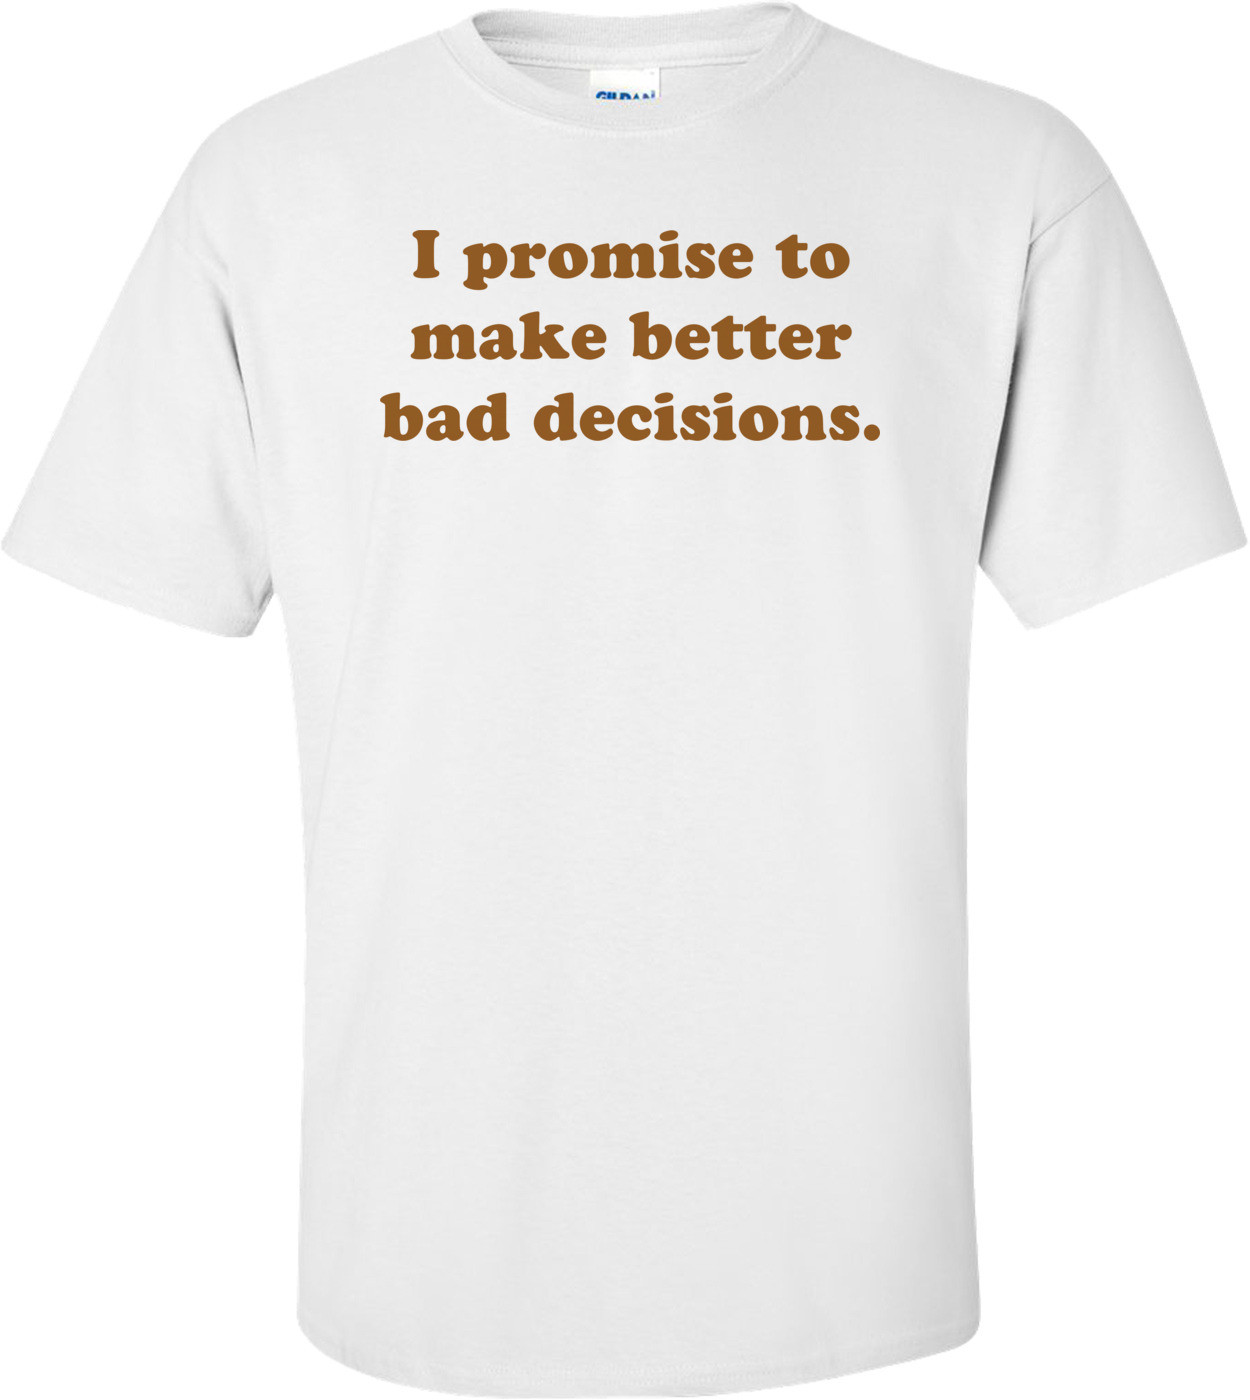 I promise to make better bad decisions. Shirt